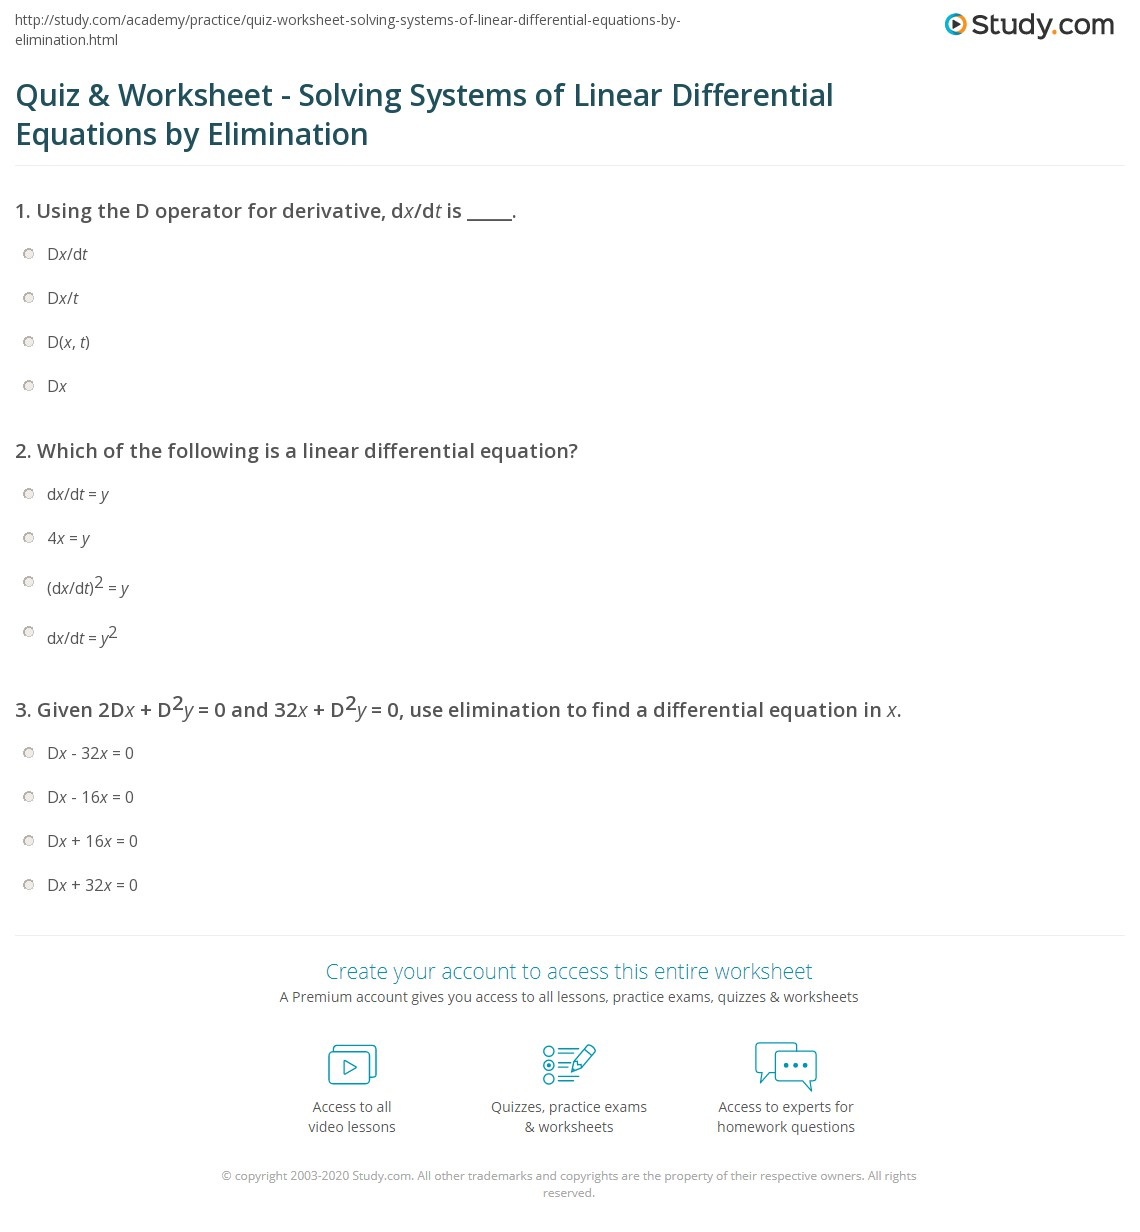 worksheet Solving Systems Using Elimination Worksheet quiz worksheet solving systems of linear differential equations print by elimination worksheet